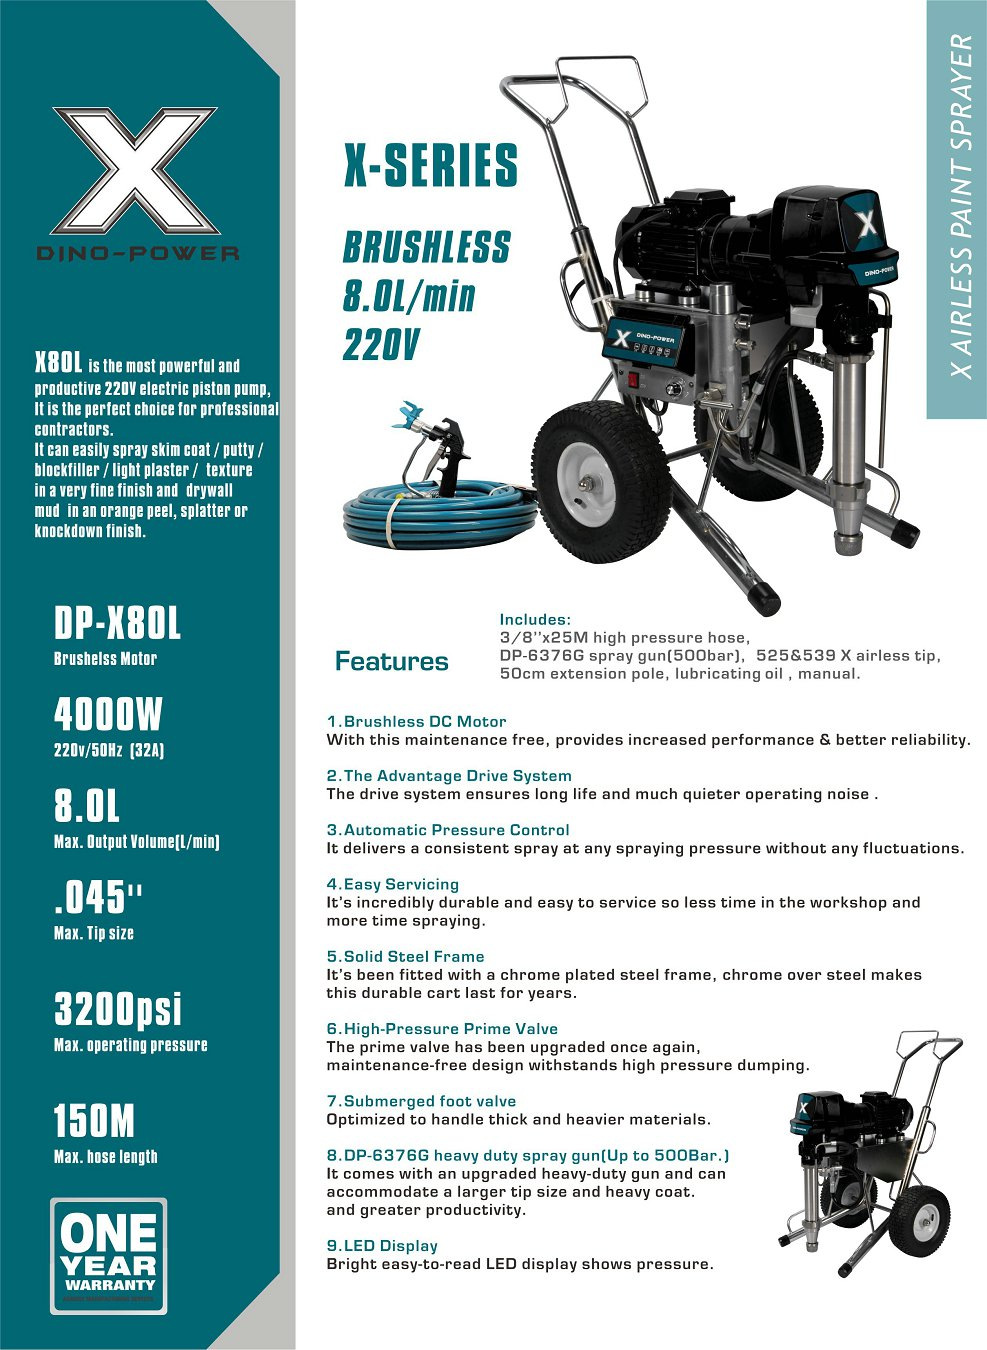 X80L 220 Volt, The largest electric airless/texture sprayer